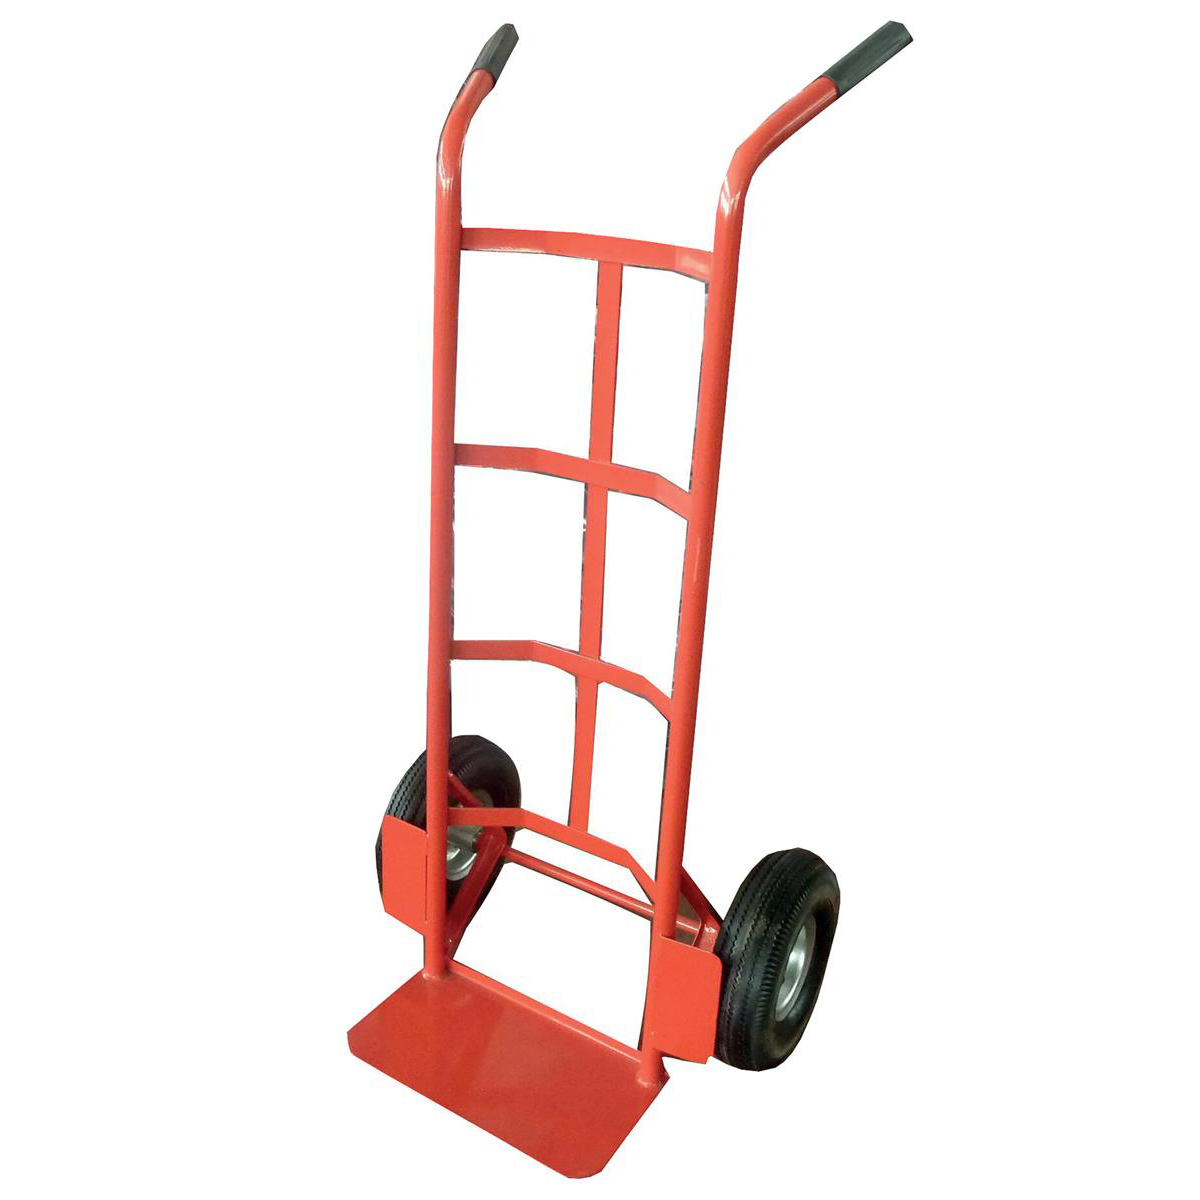 Trolleys Hand Trolley Heavy-duty Capacity 200kg Wheel 255mm Foot Size W350xL200mm Red